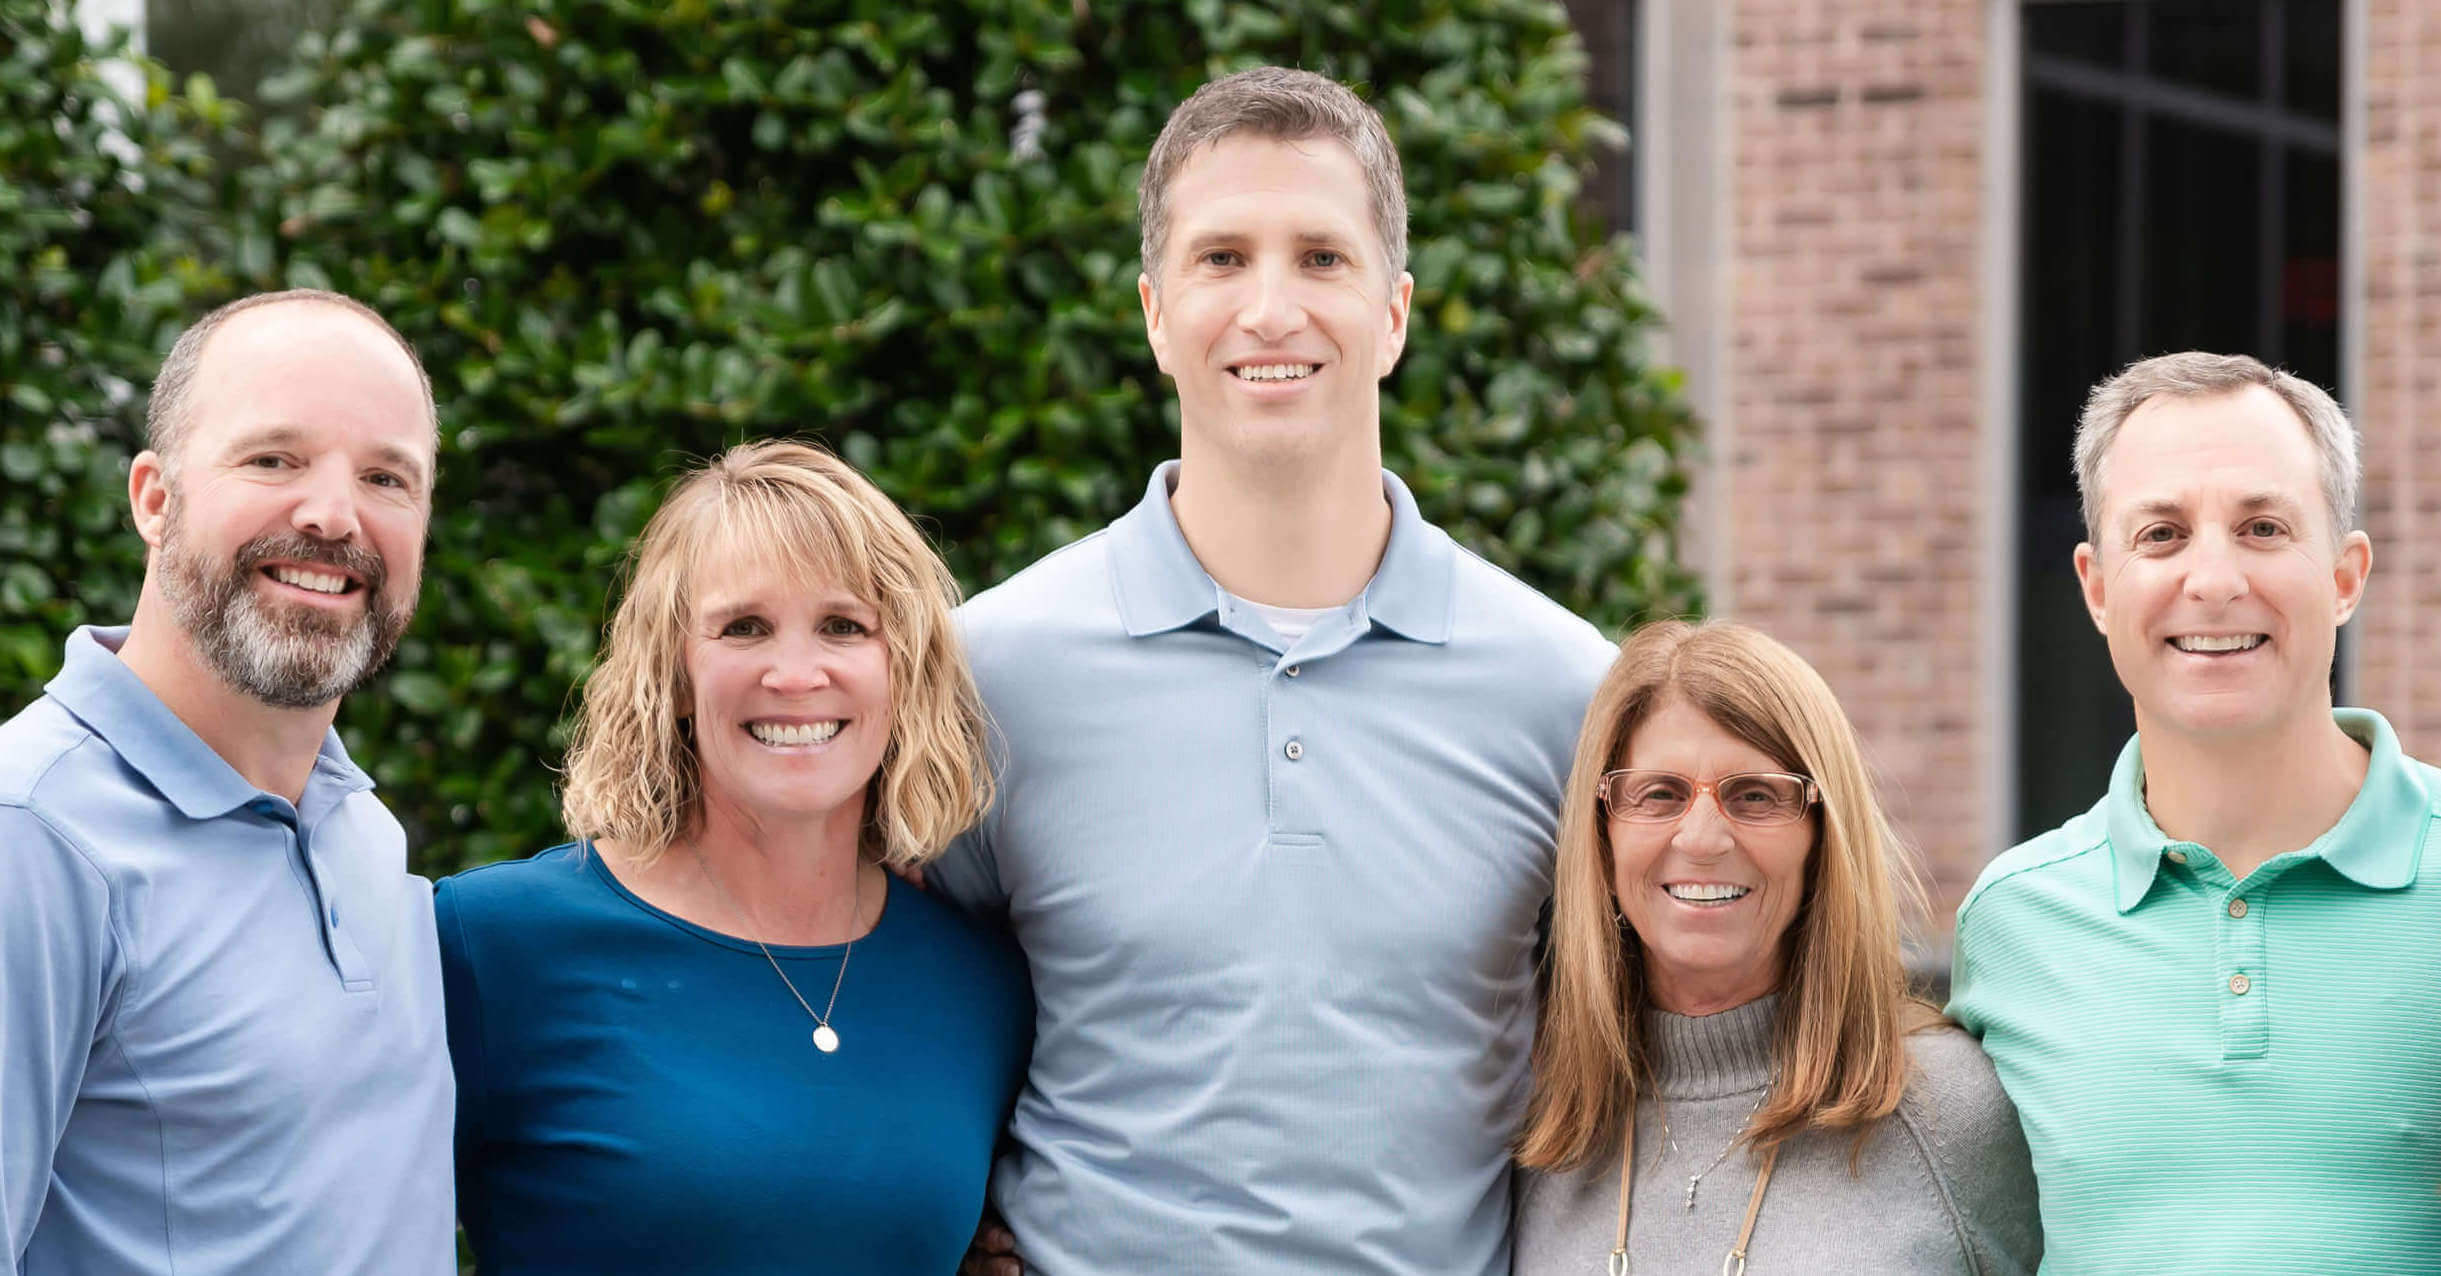 Shoreline physical therapy staff photo